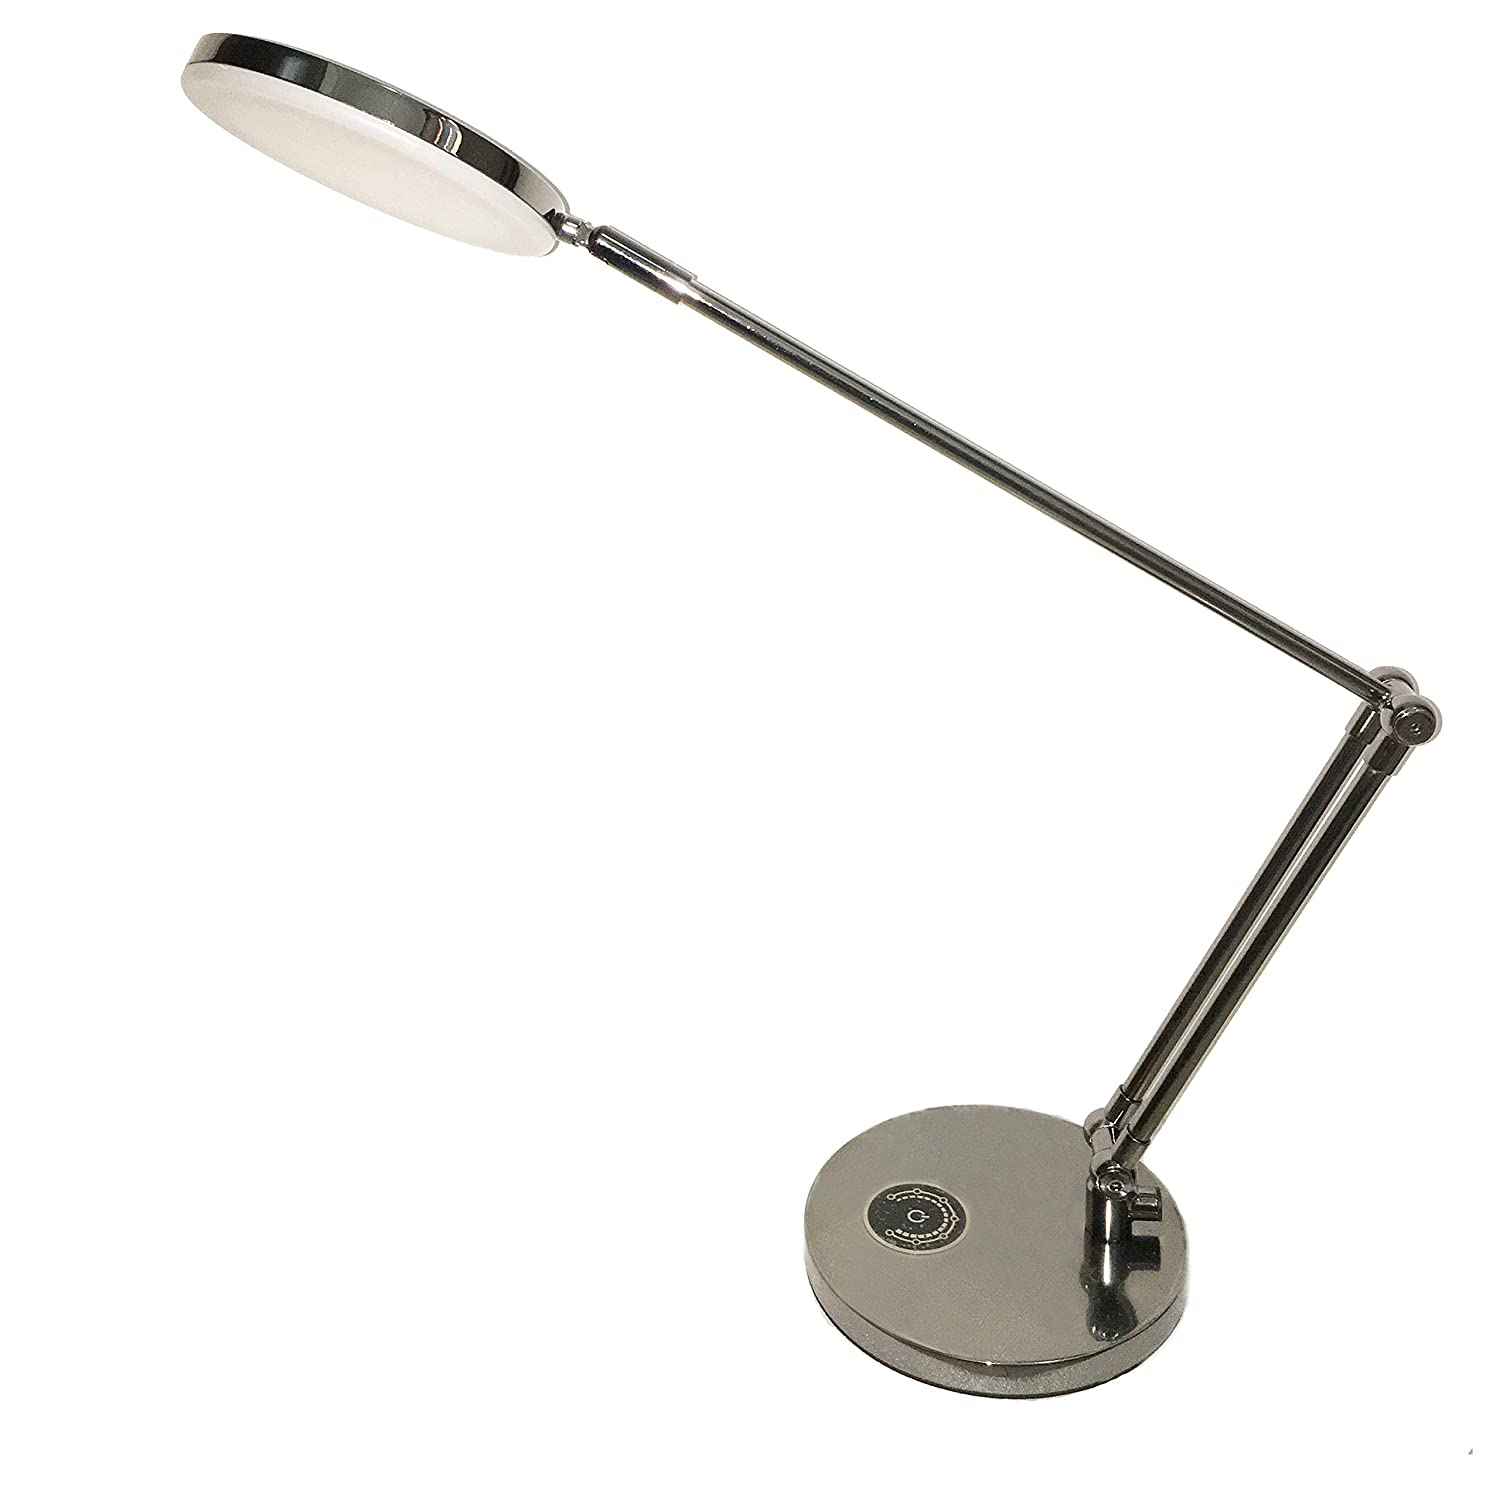 Adjustable Upright Piano Lamp, Aluminum Alloy LED Lamp for Piano, Music Stand Orchestra Pit Desk Home Study Bravodeal